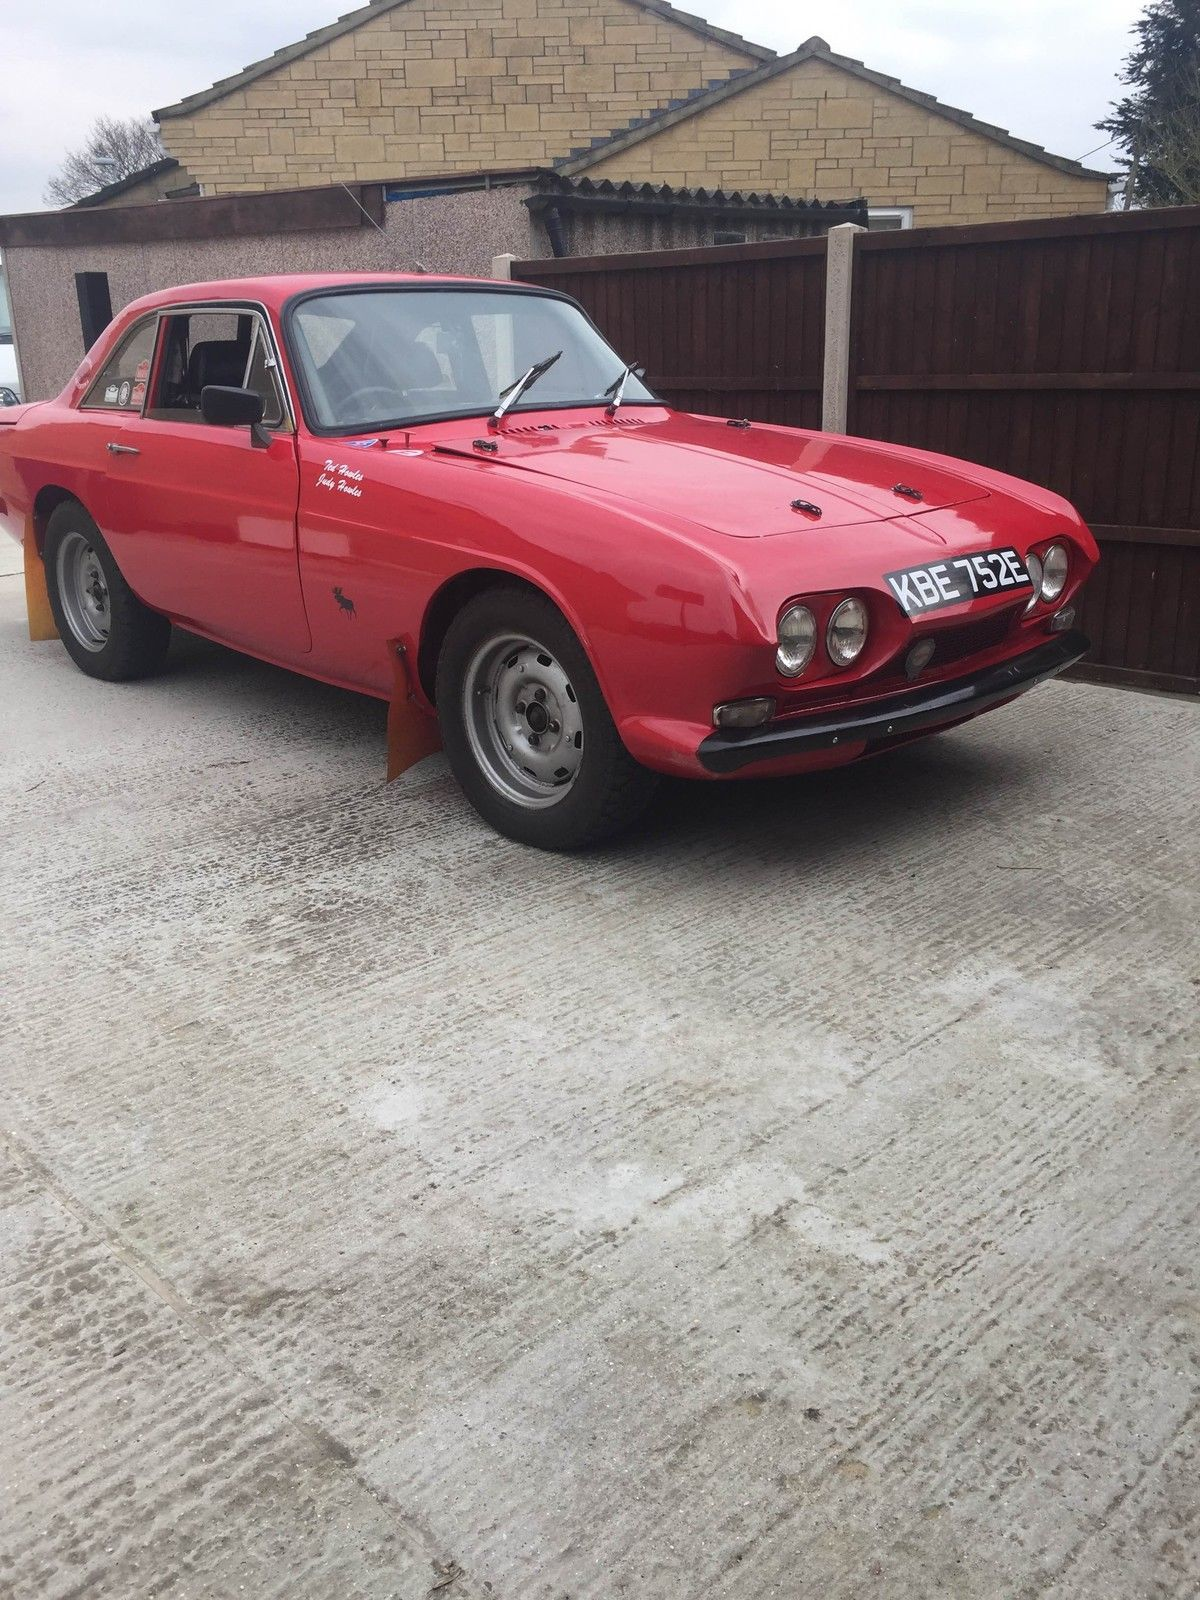 RELIANT SCIMITAR GT 1967 HISTORIC FIA RALLY CAR in Cars, Motorcycles ...